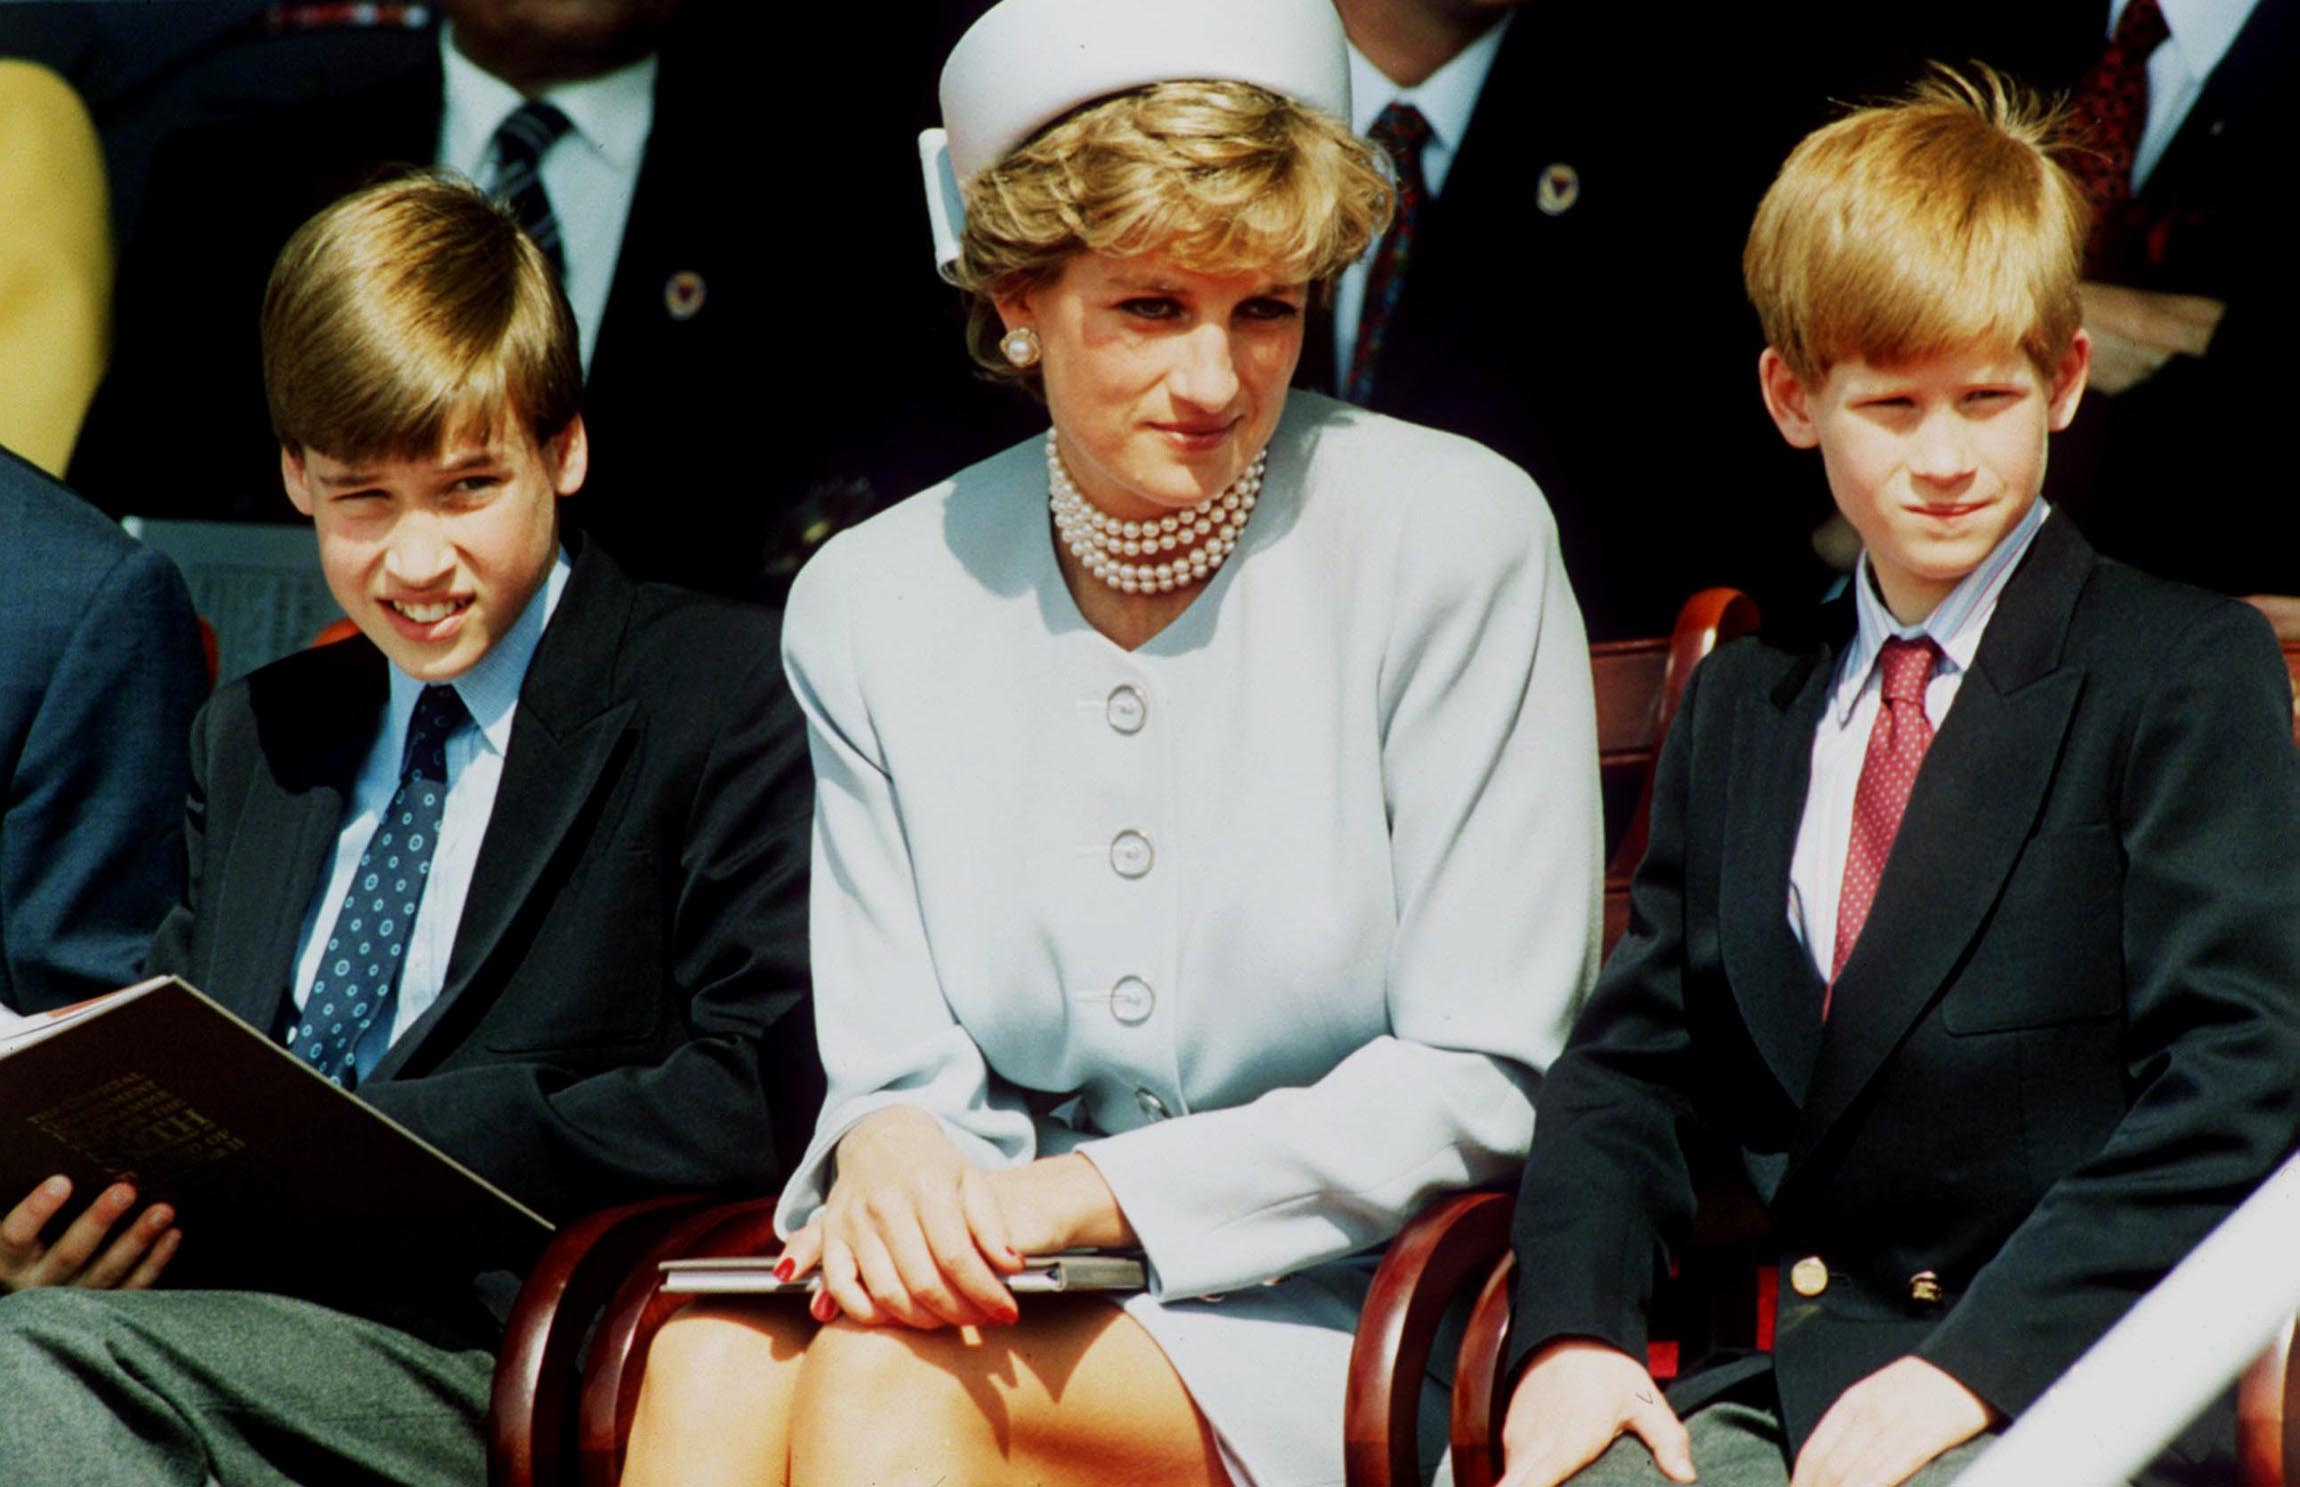 Princess Diana and her sons Prince William and Prince Harry on May 7, 1995, in London, England. | Source: Getty Images.